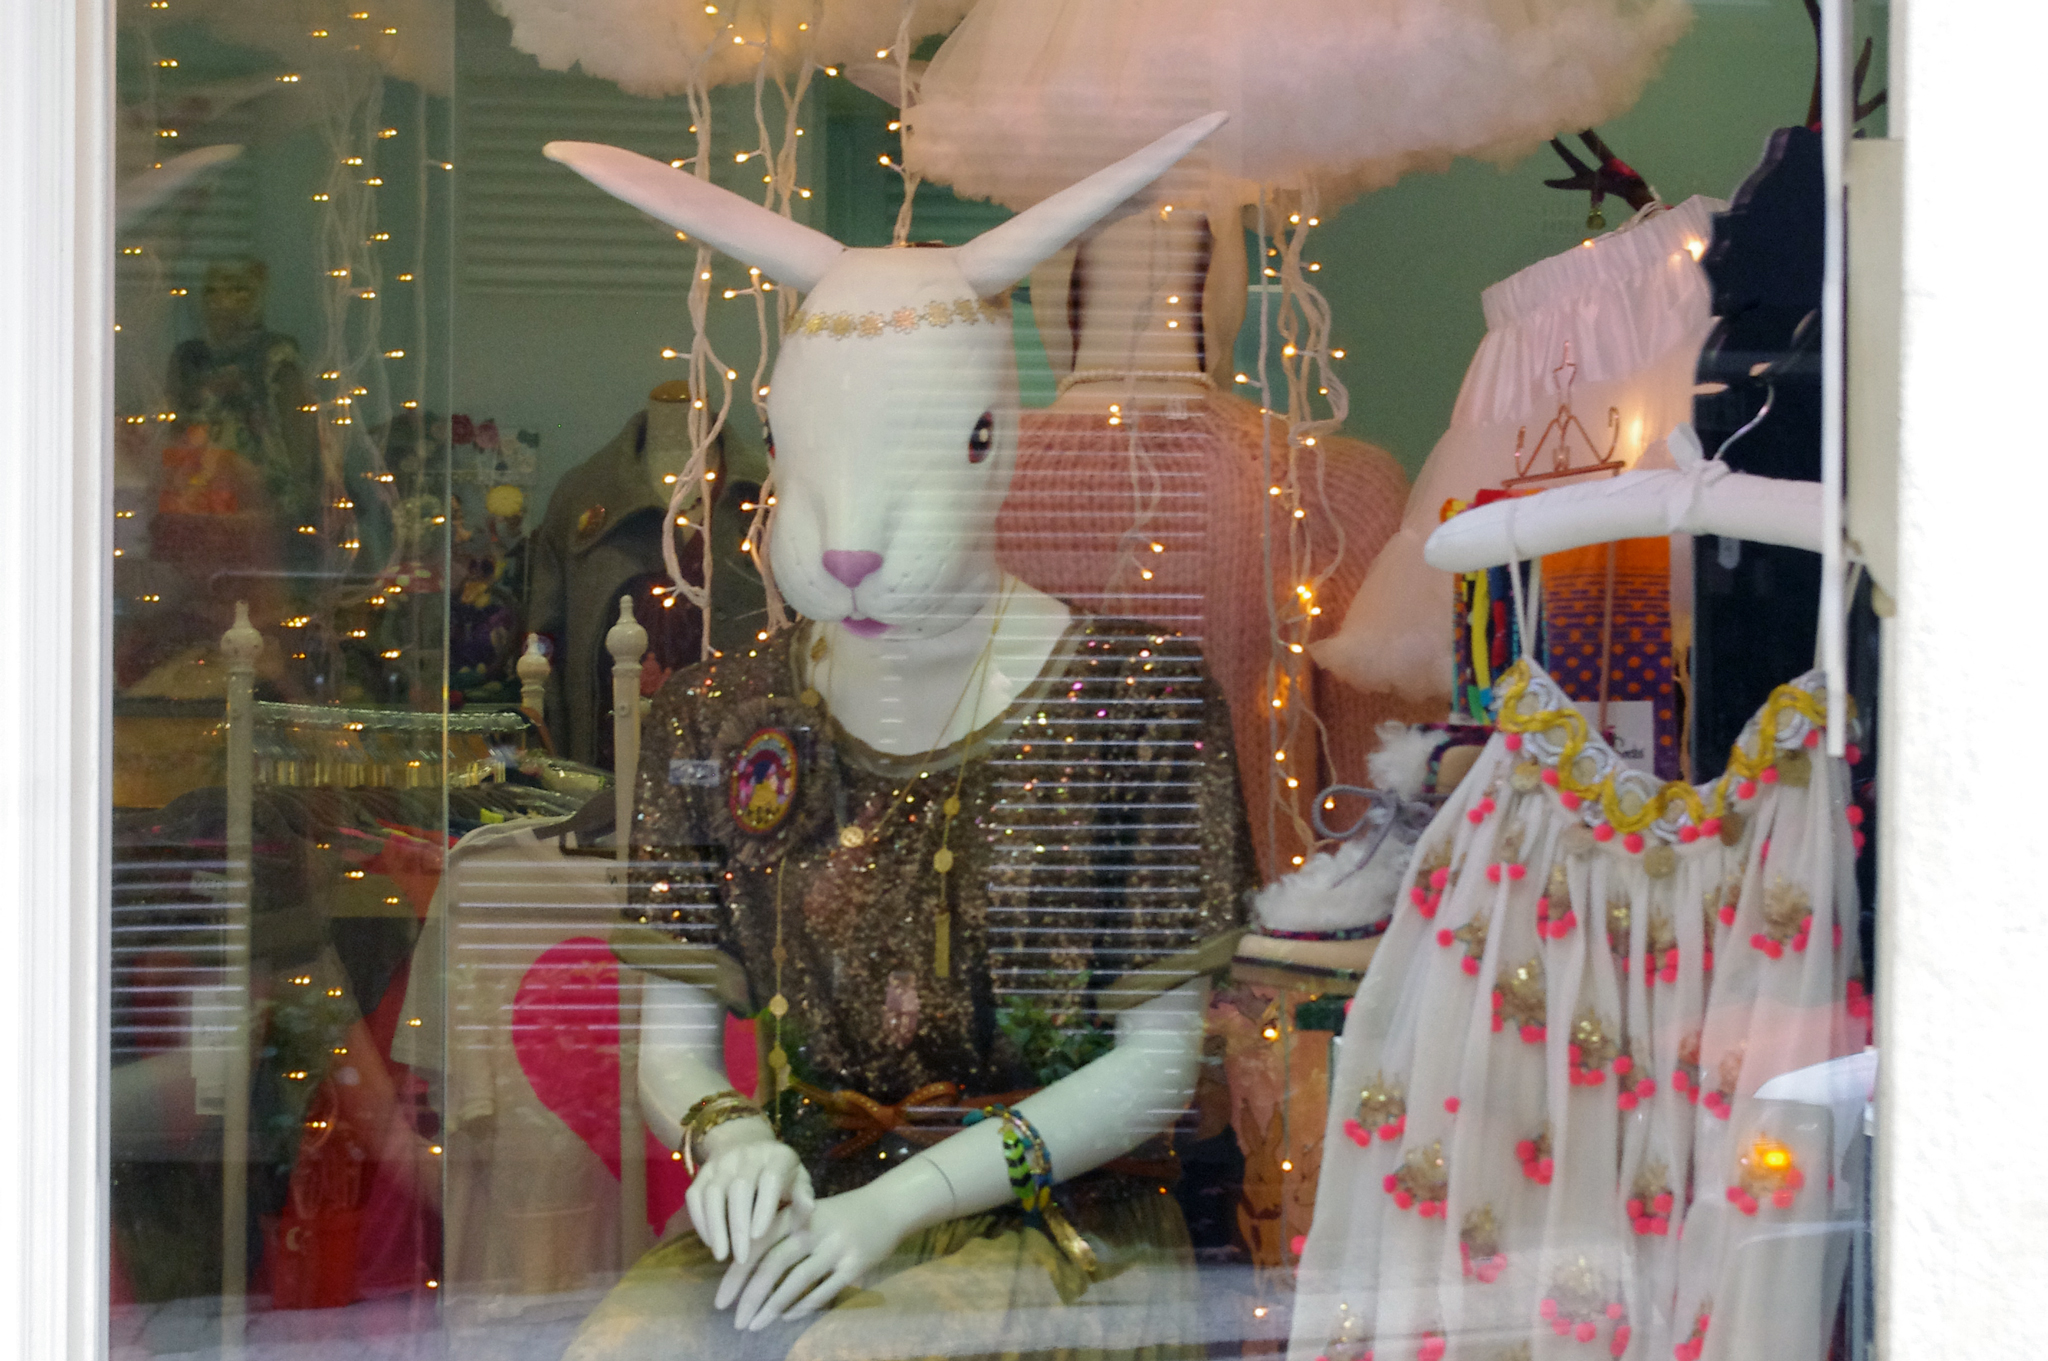 Window display at Little Black Dress in Hong Kong. Photo by alphacityguides.